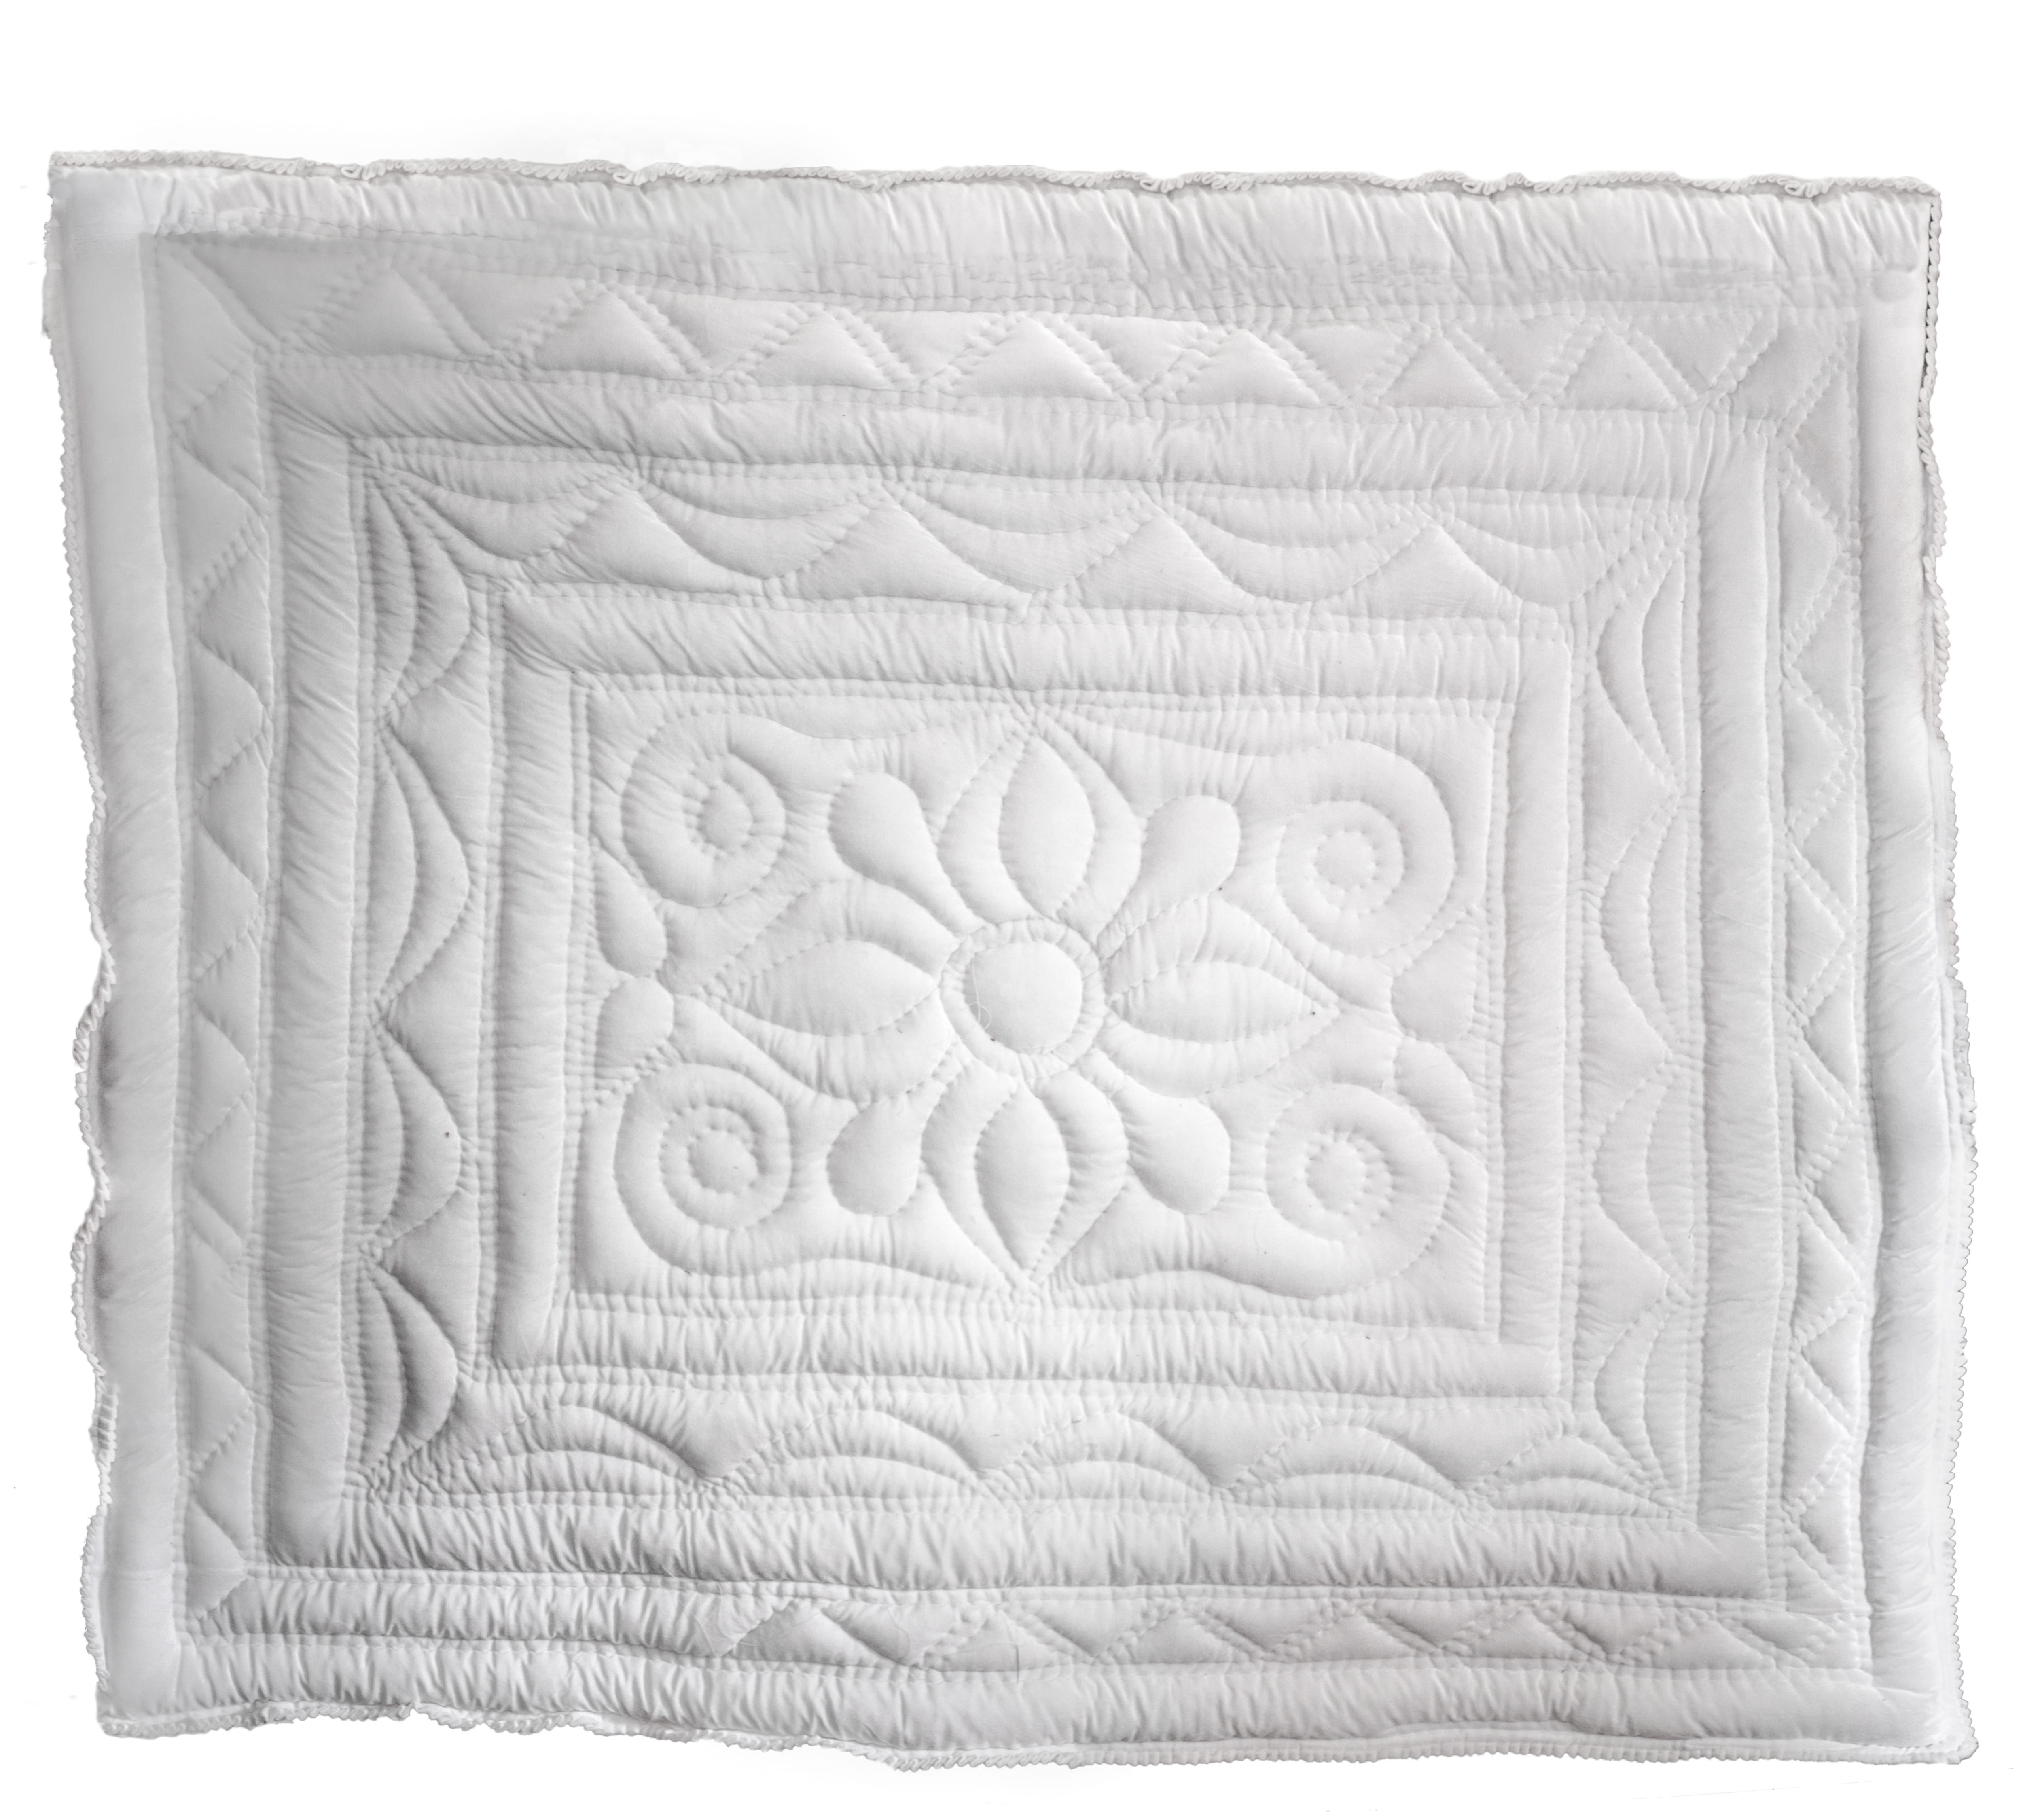 Pontha quilt India white